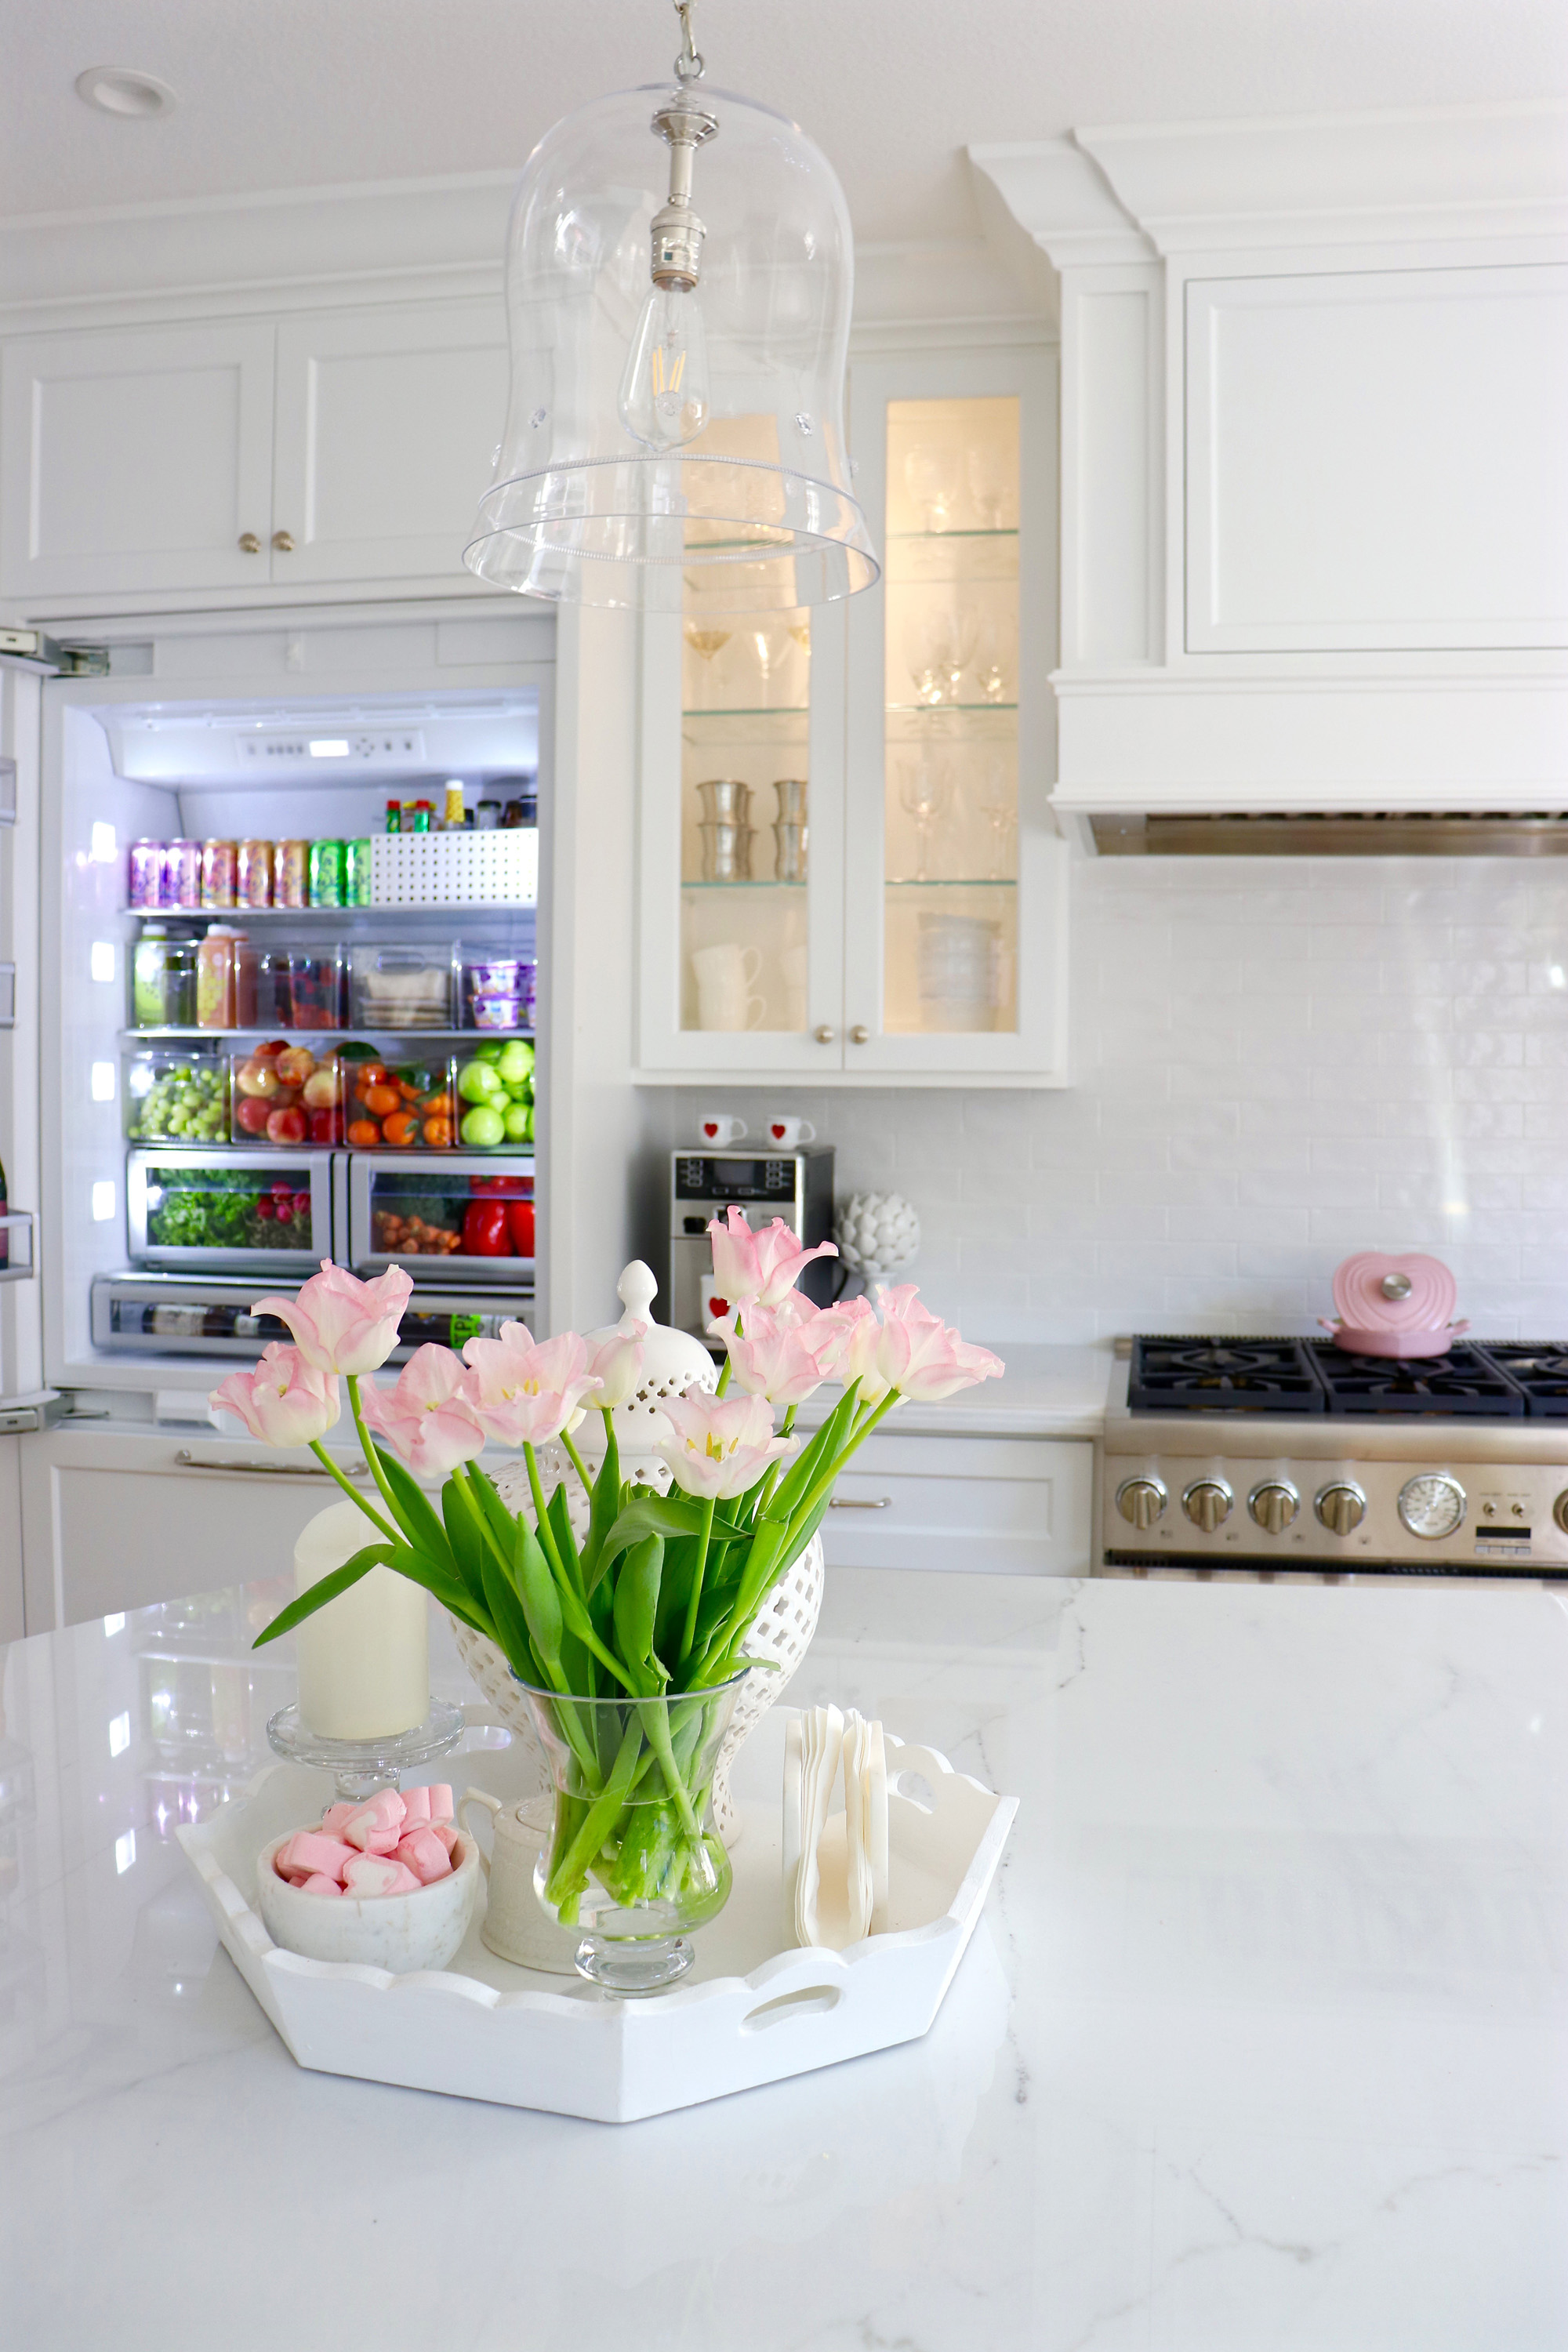 10 Tips To Organize Your Refrigerator